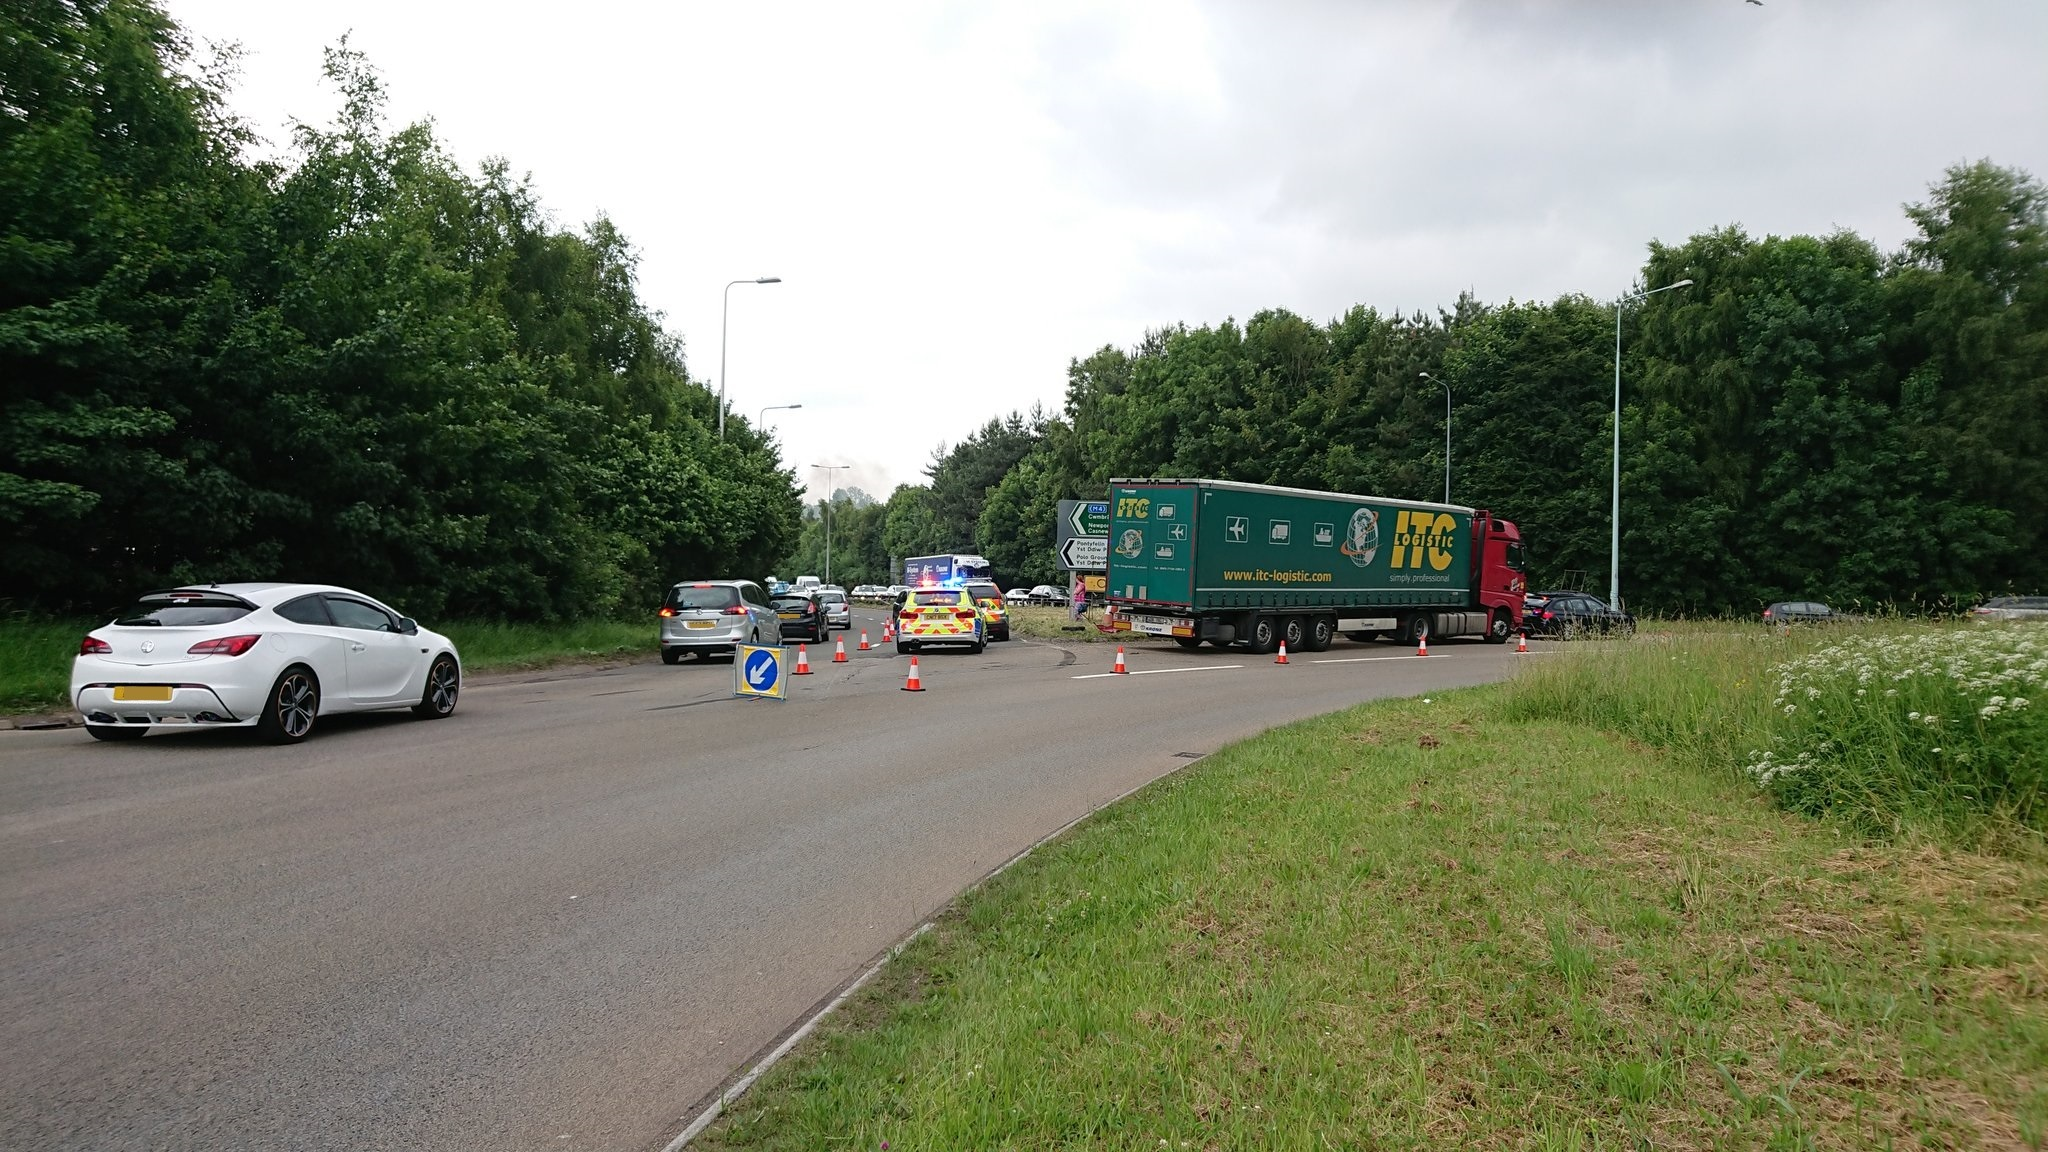 There was disruption on the A4042 following an accident